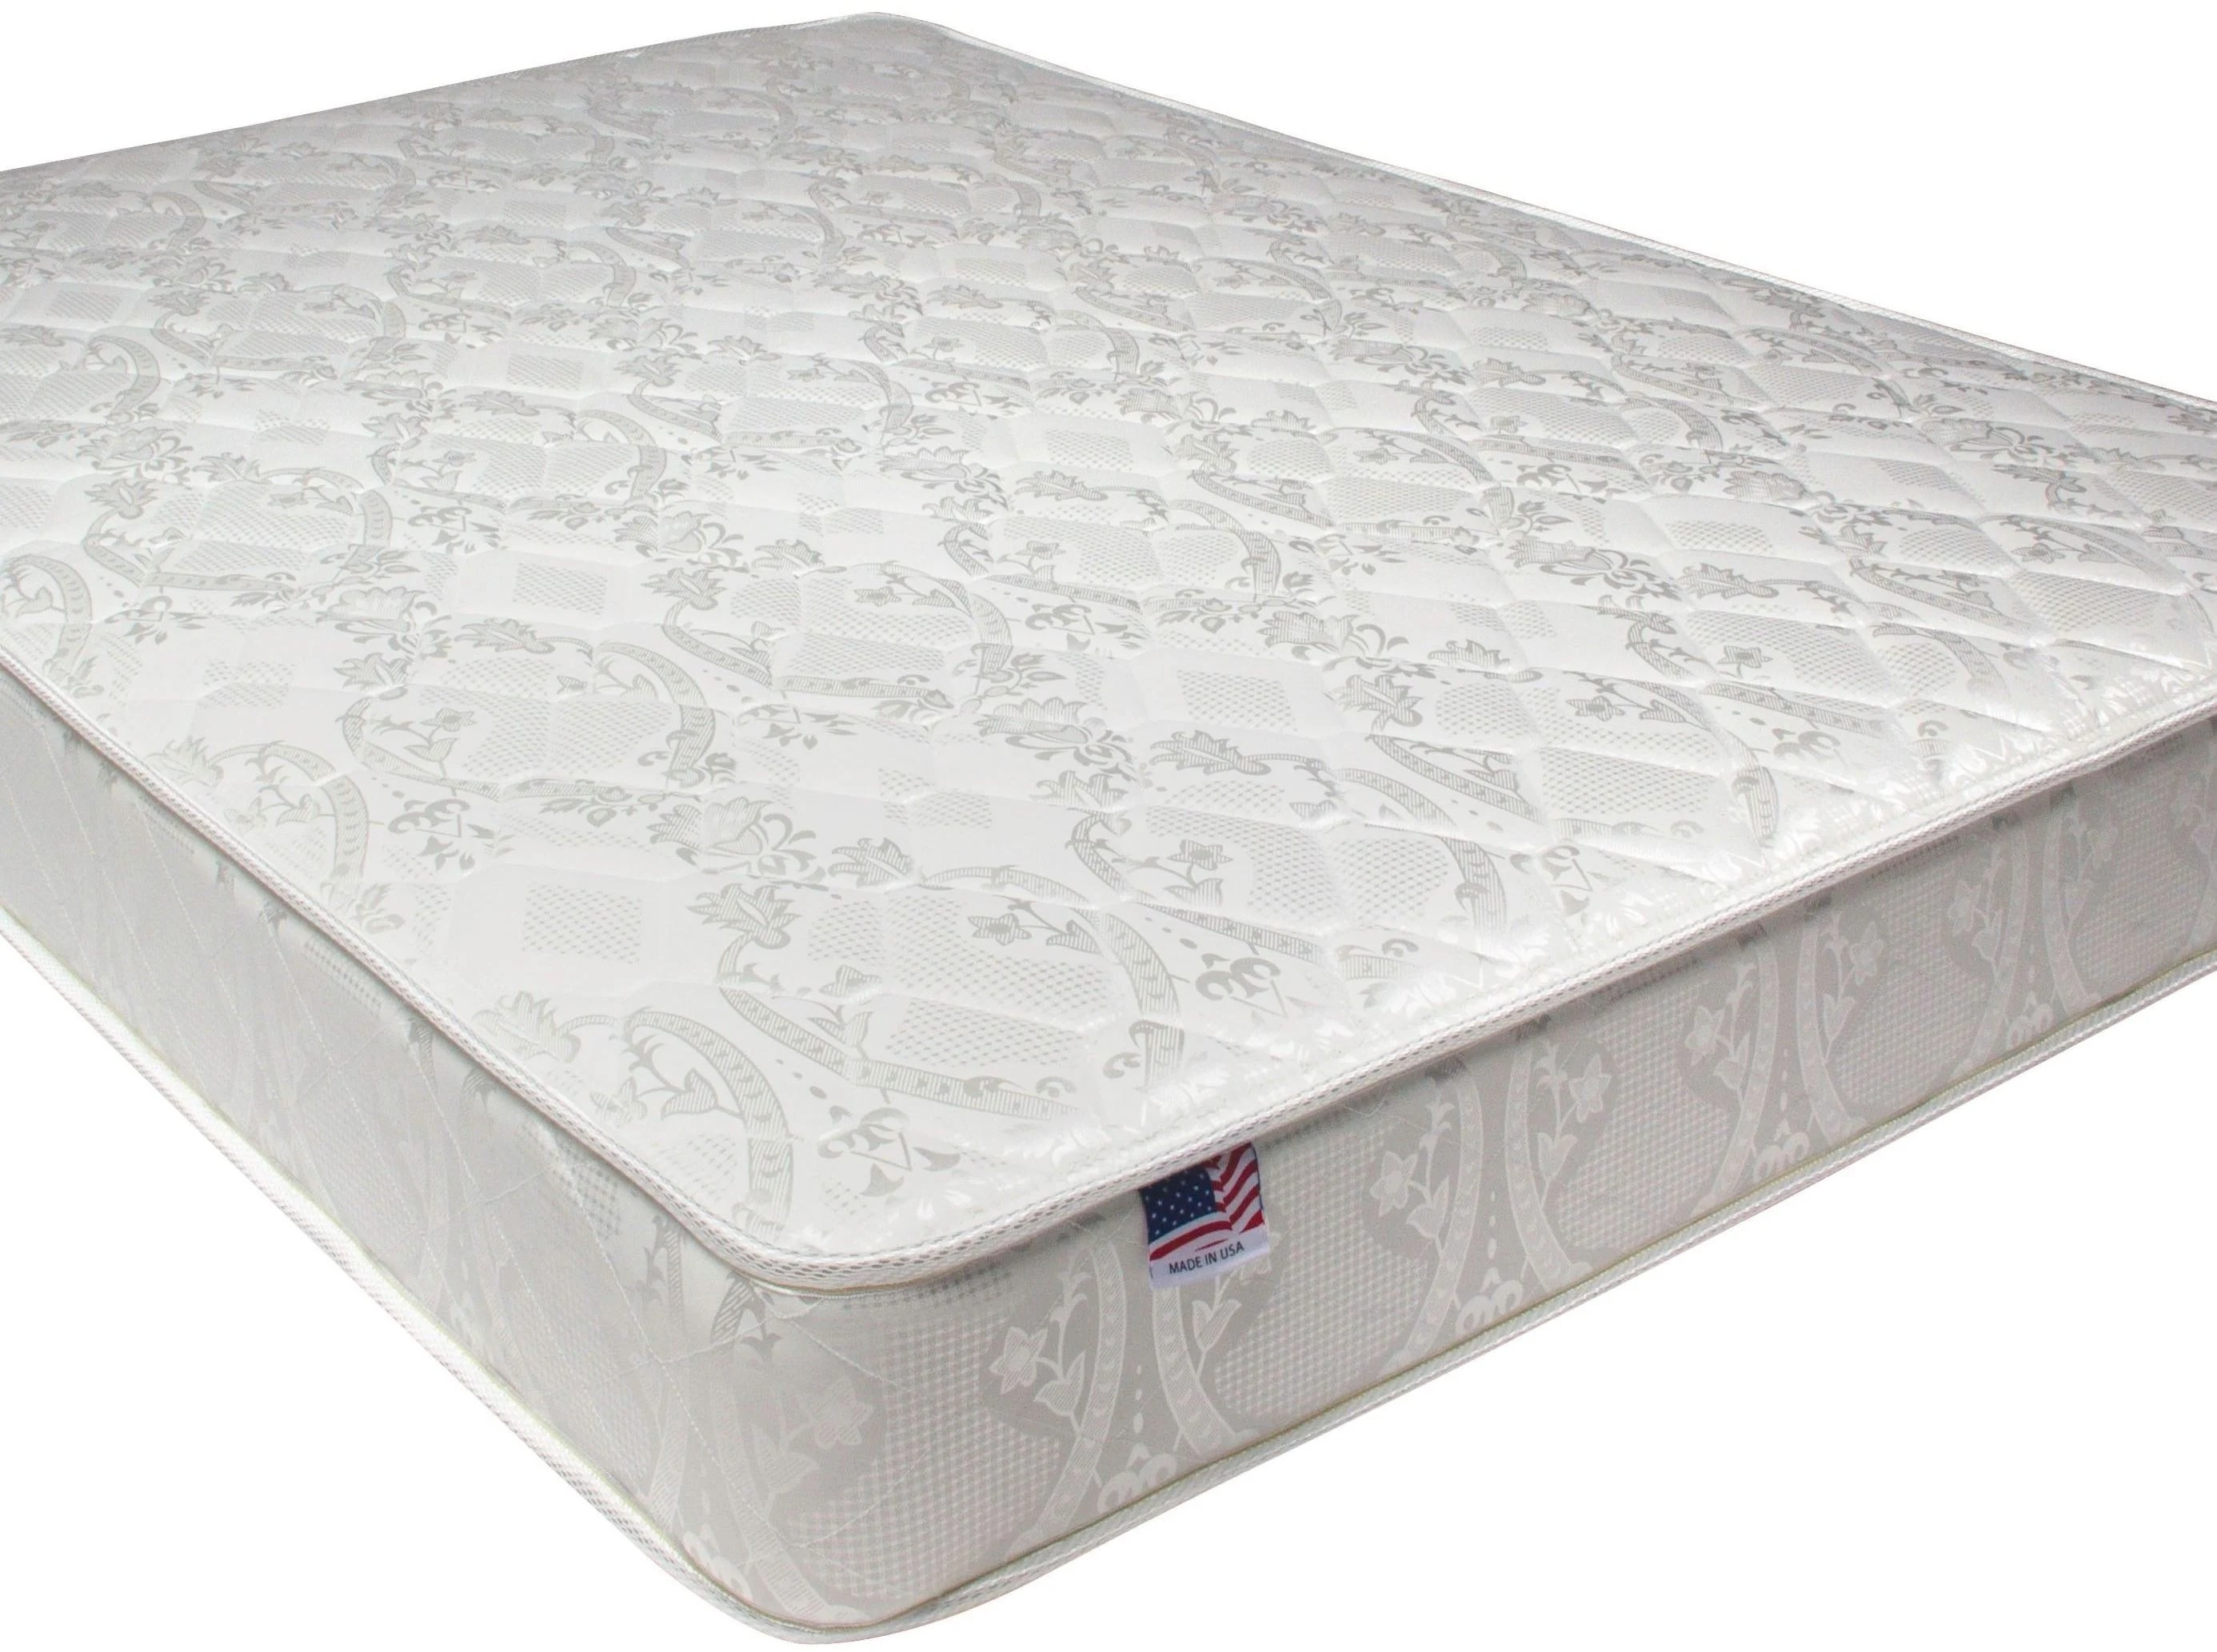 Pillow Top King Mattress Hibiscus 9